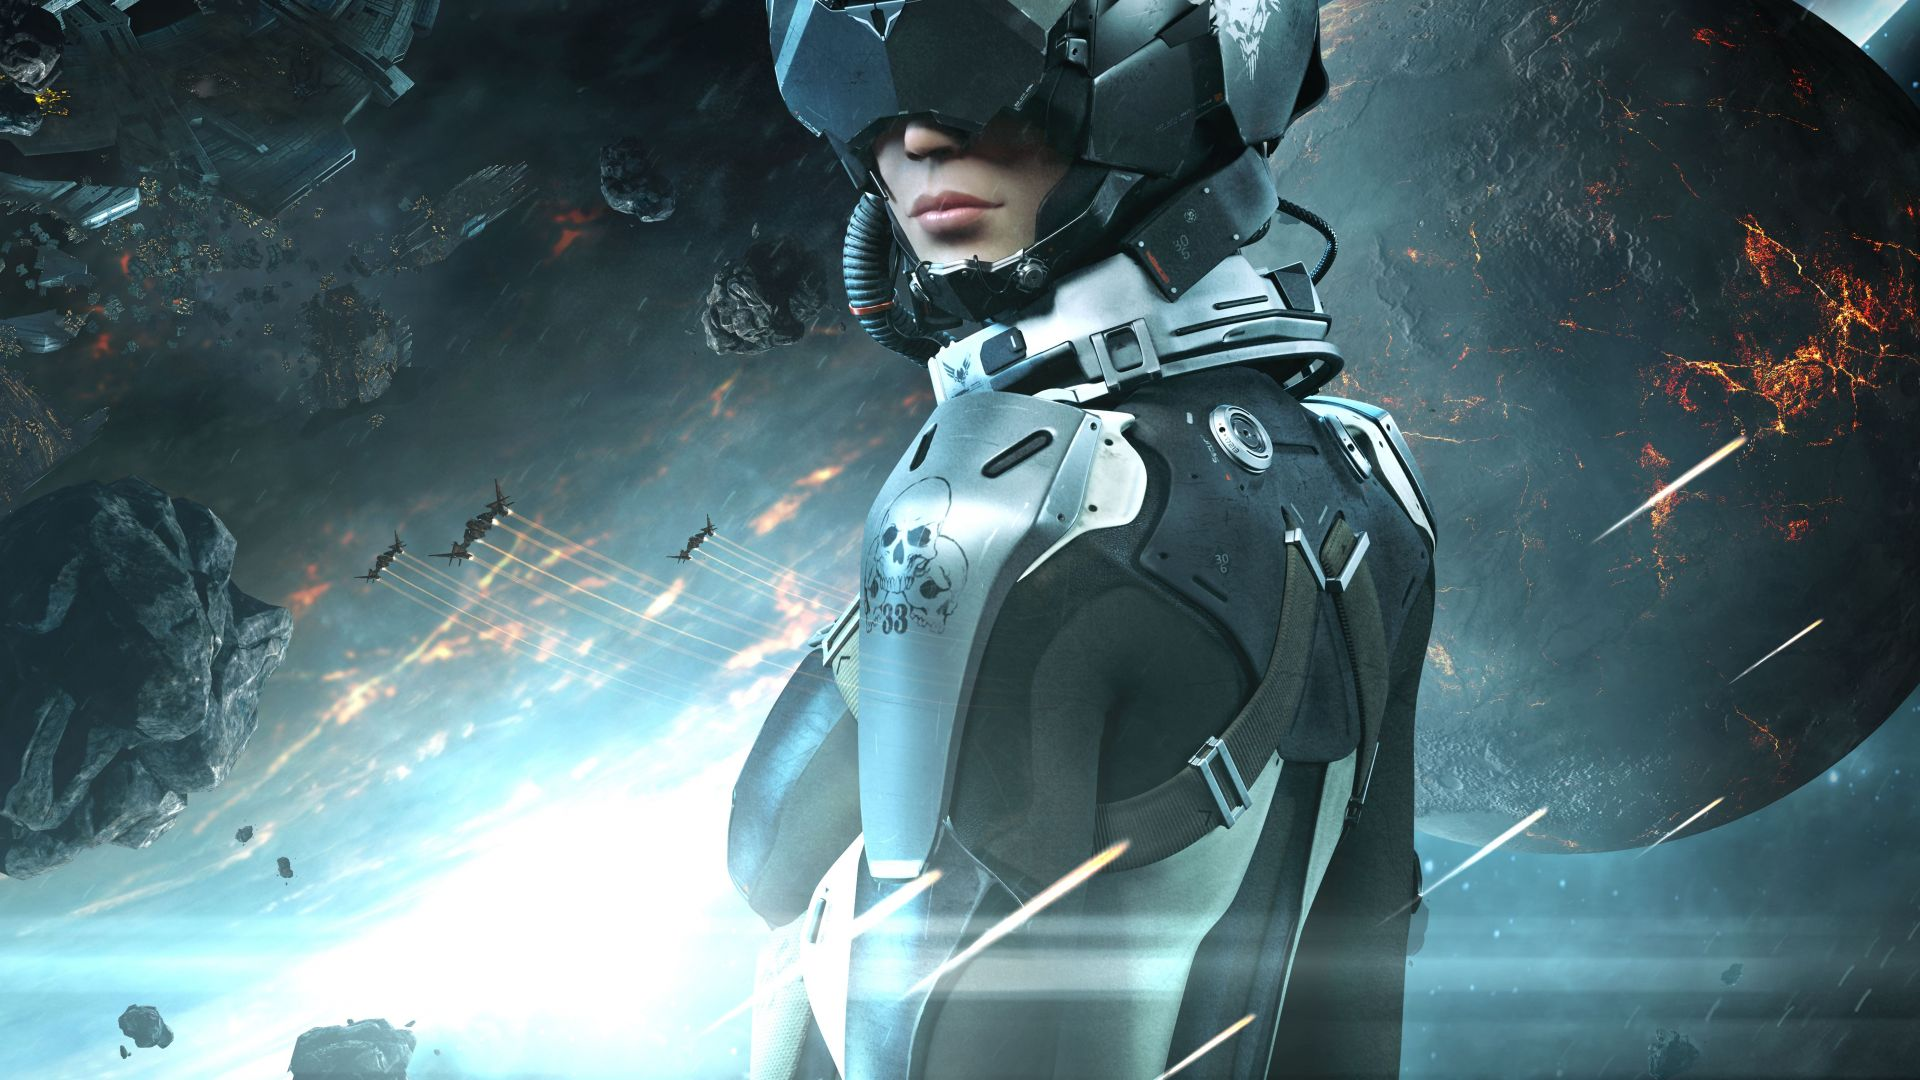 EVE: Valkyrie, Best Games 2015, game, space, sci-fi, PC (horizontal)